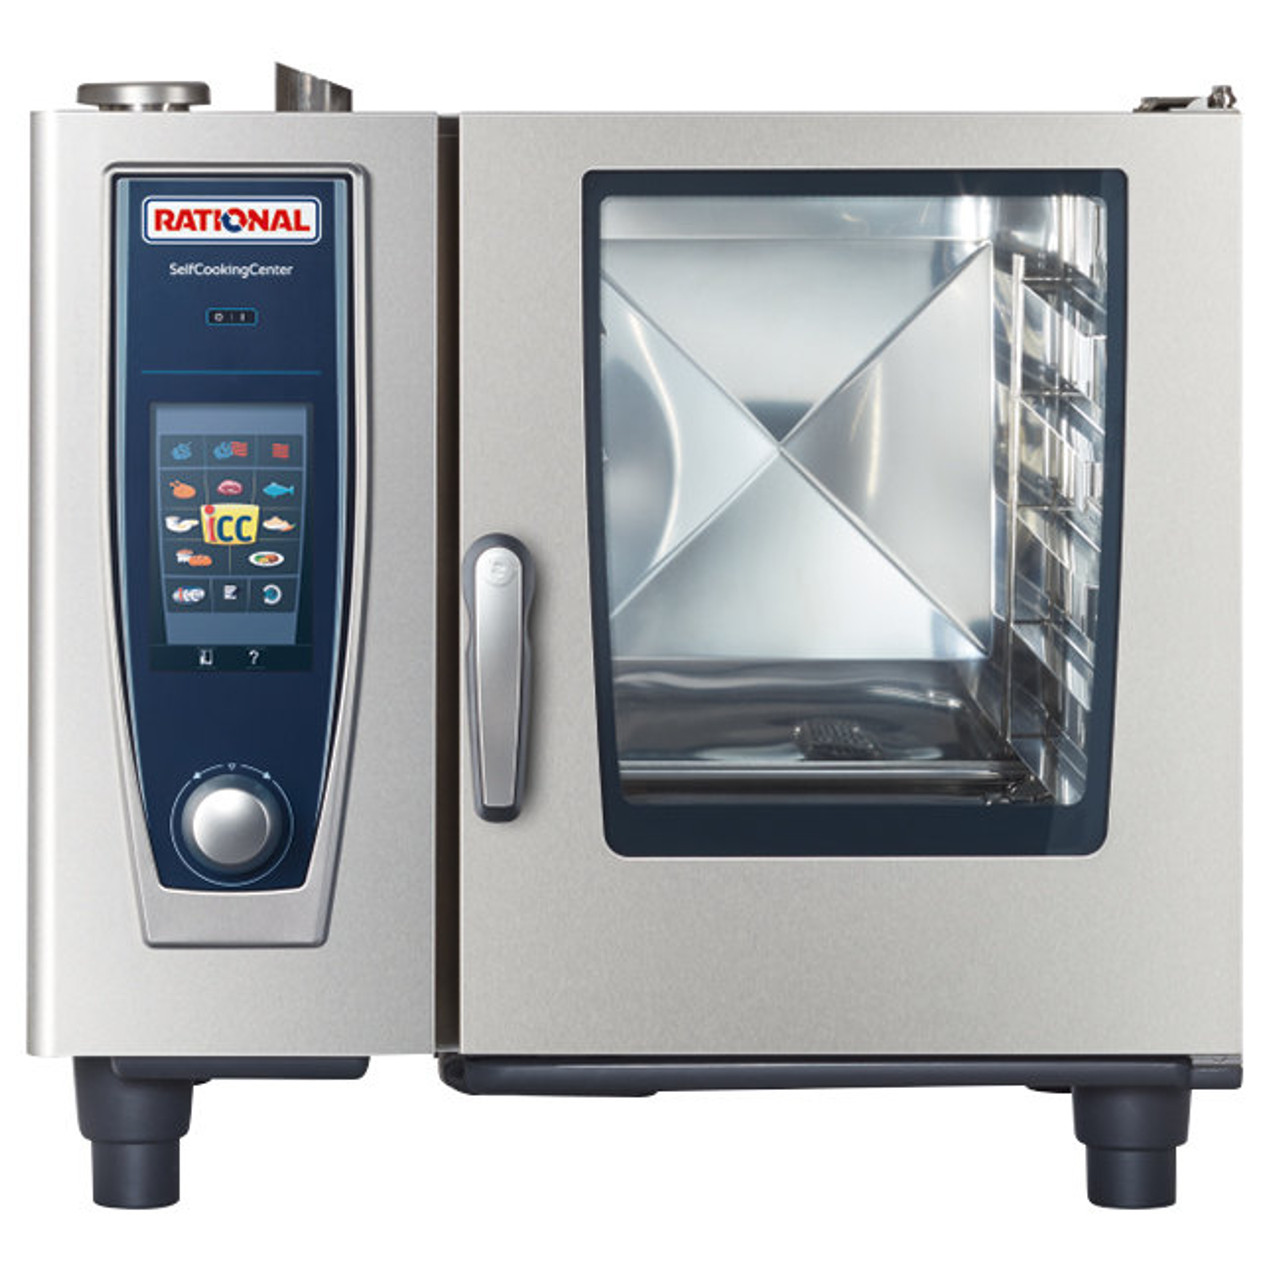 Rational B618106 12 SelfCookingCenter Model 61 Electric Combi Oven - 6 Pans  - 208/240V 3 Phase